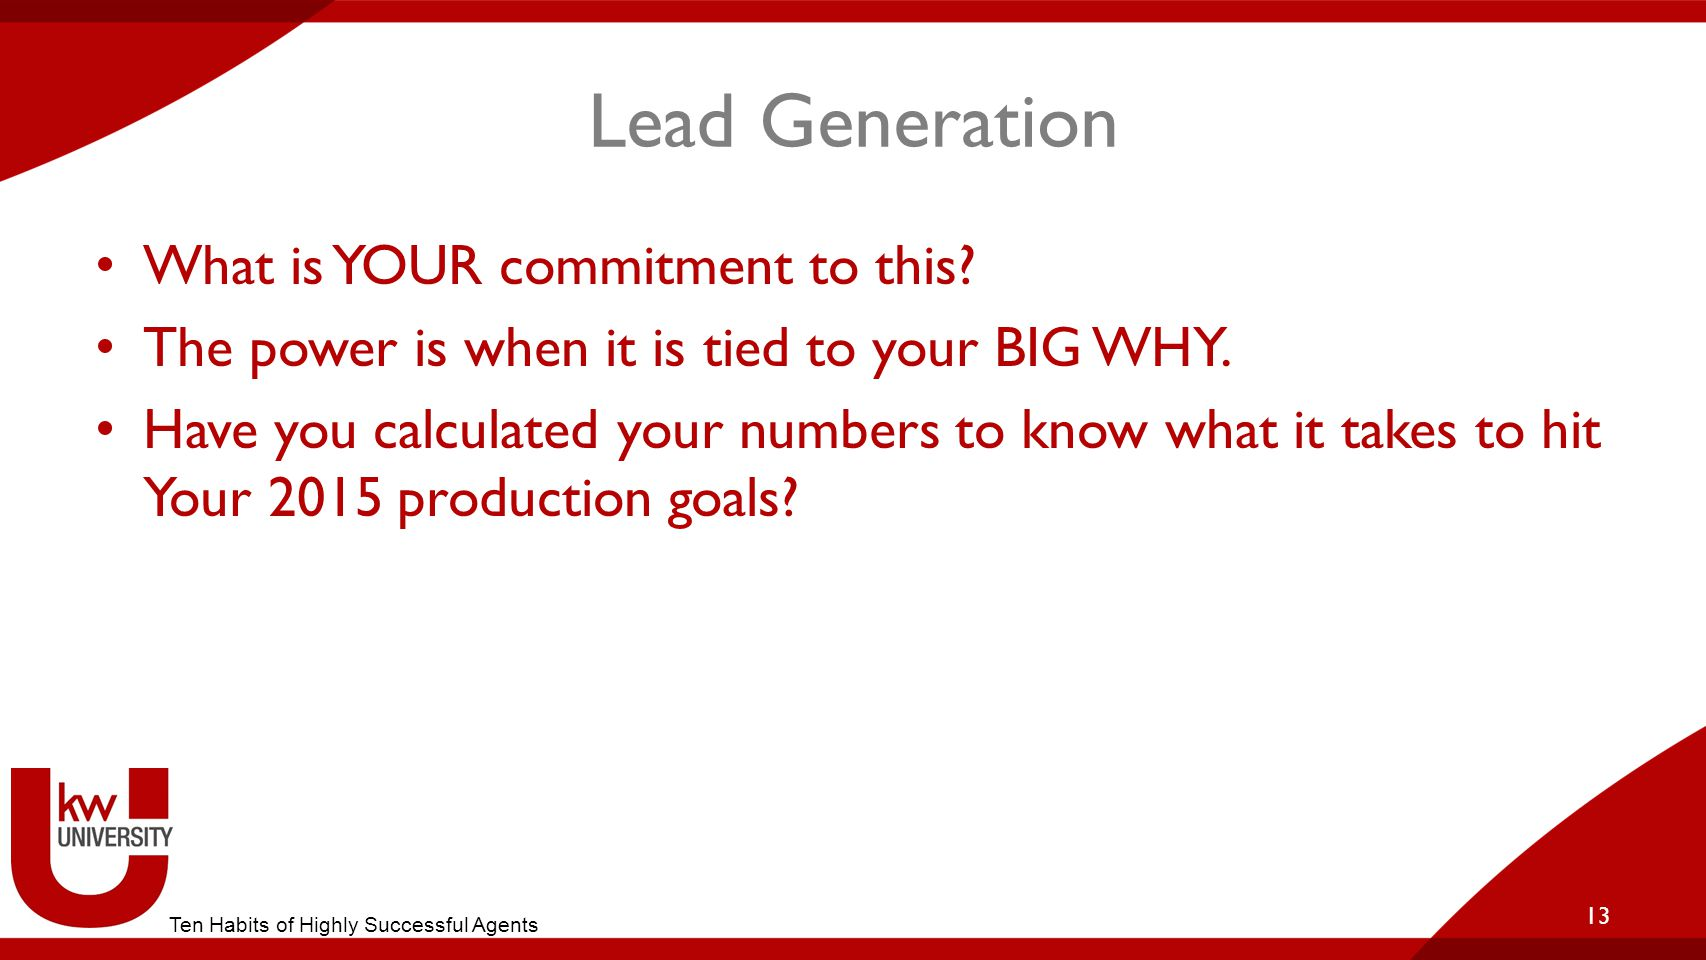 Lead Generation What is YOUR commitment to this? The power is when it is tied to your BIG WHY. Have you calculated your numbers to know what it takes